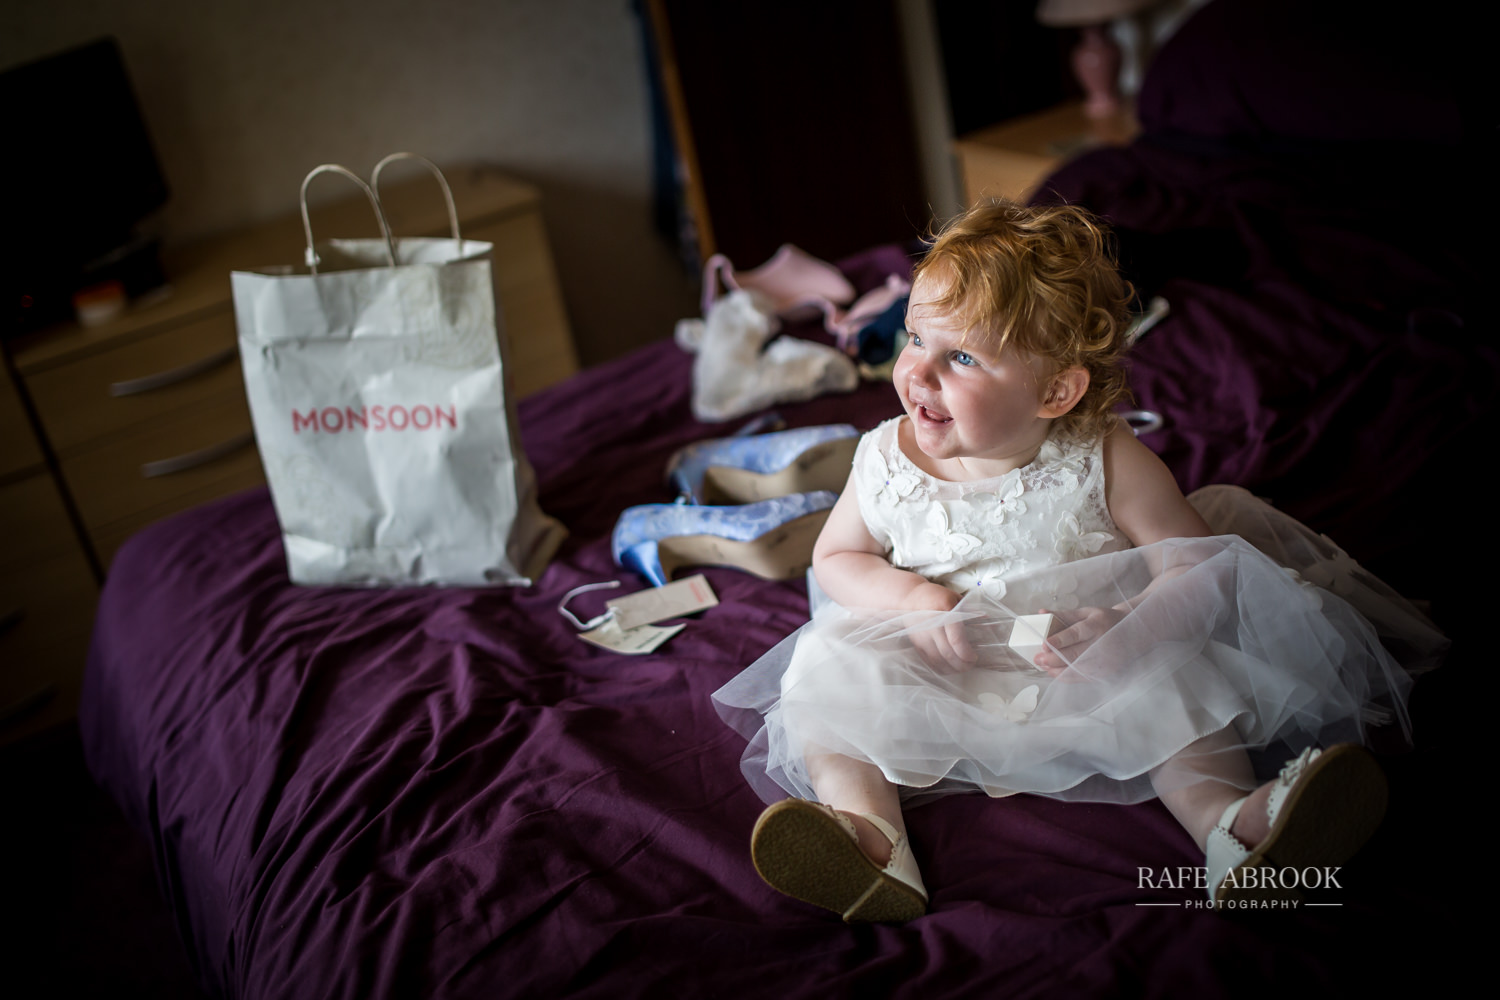 minstrel court wedding royston cambridge hertfordshire wedding photographer-1064.jpg